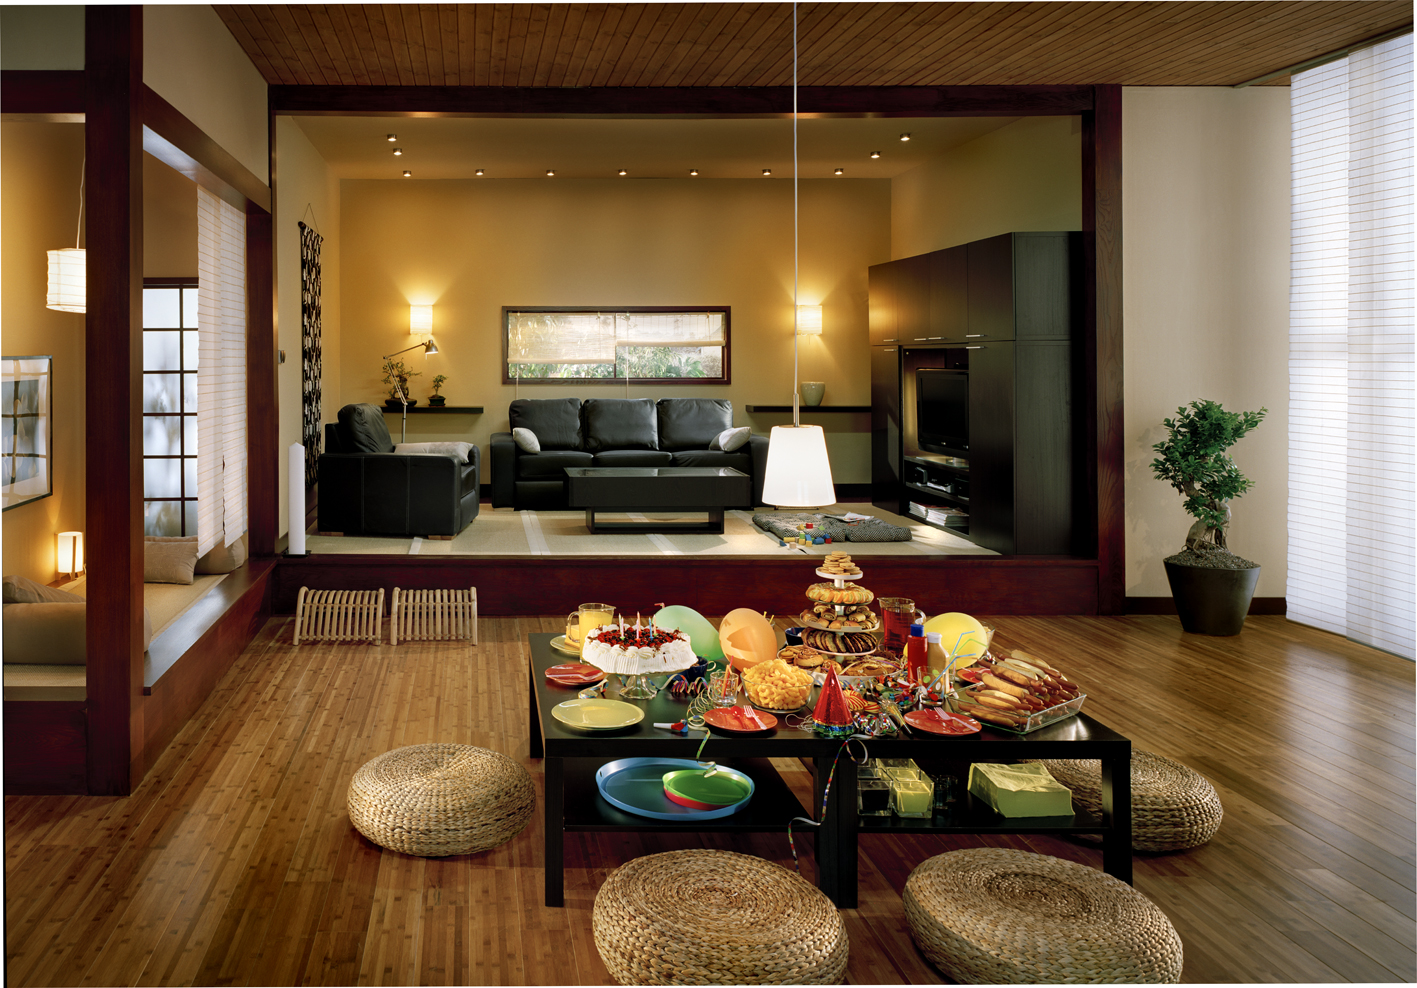 high end living room interior design with japanese tea table, decor with great taste